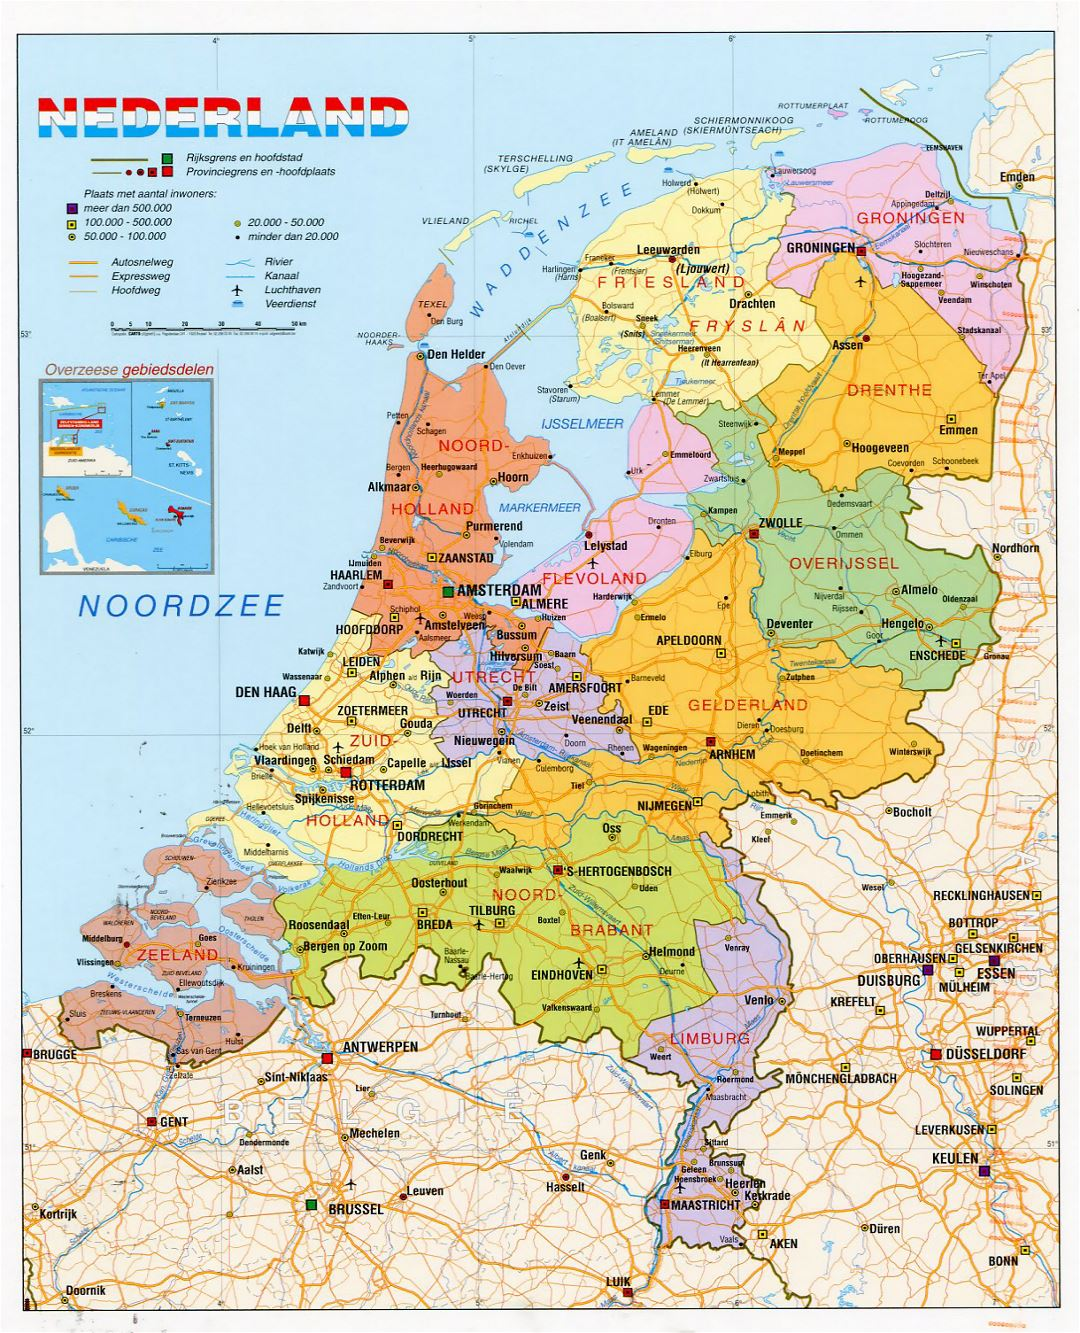 Detailed political and administrative map of Netherlands with roads, cities and airports